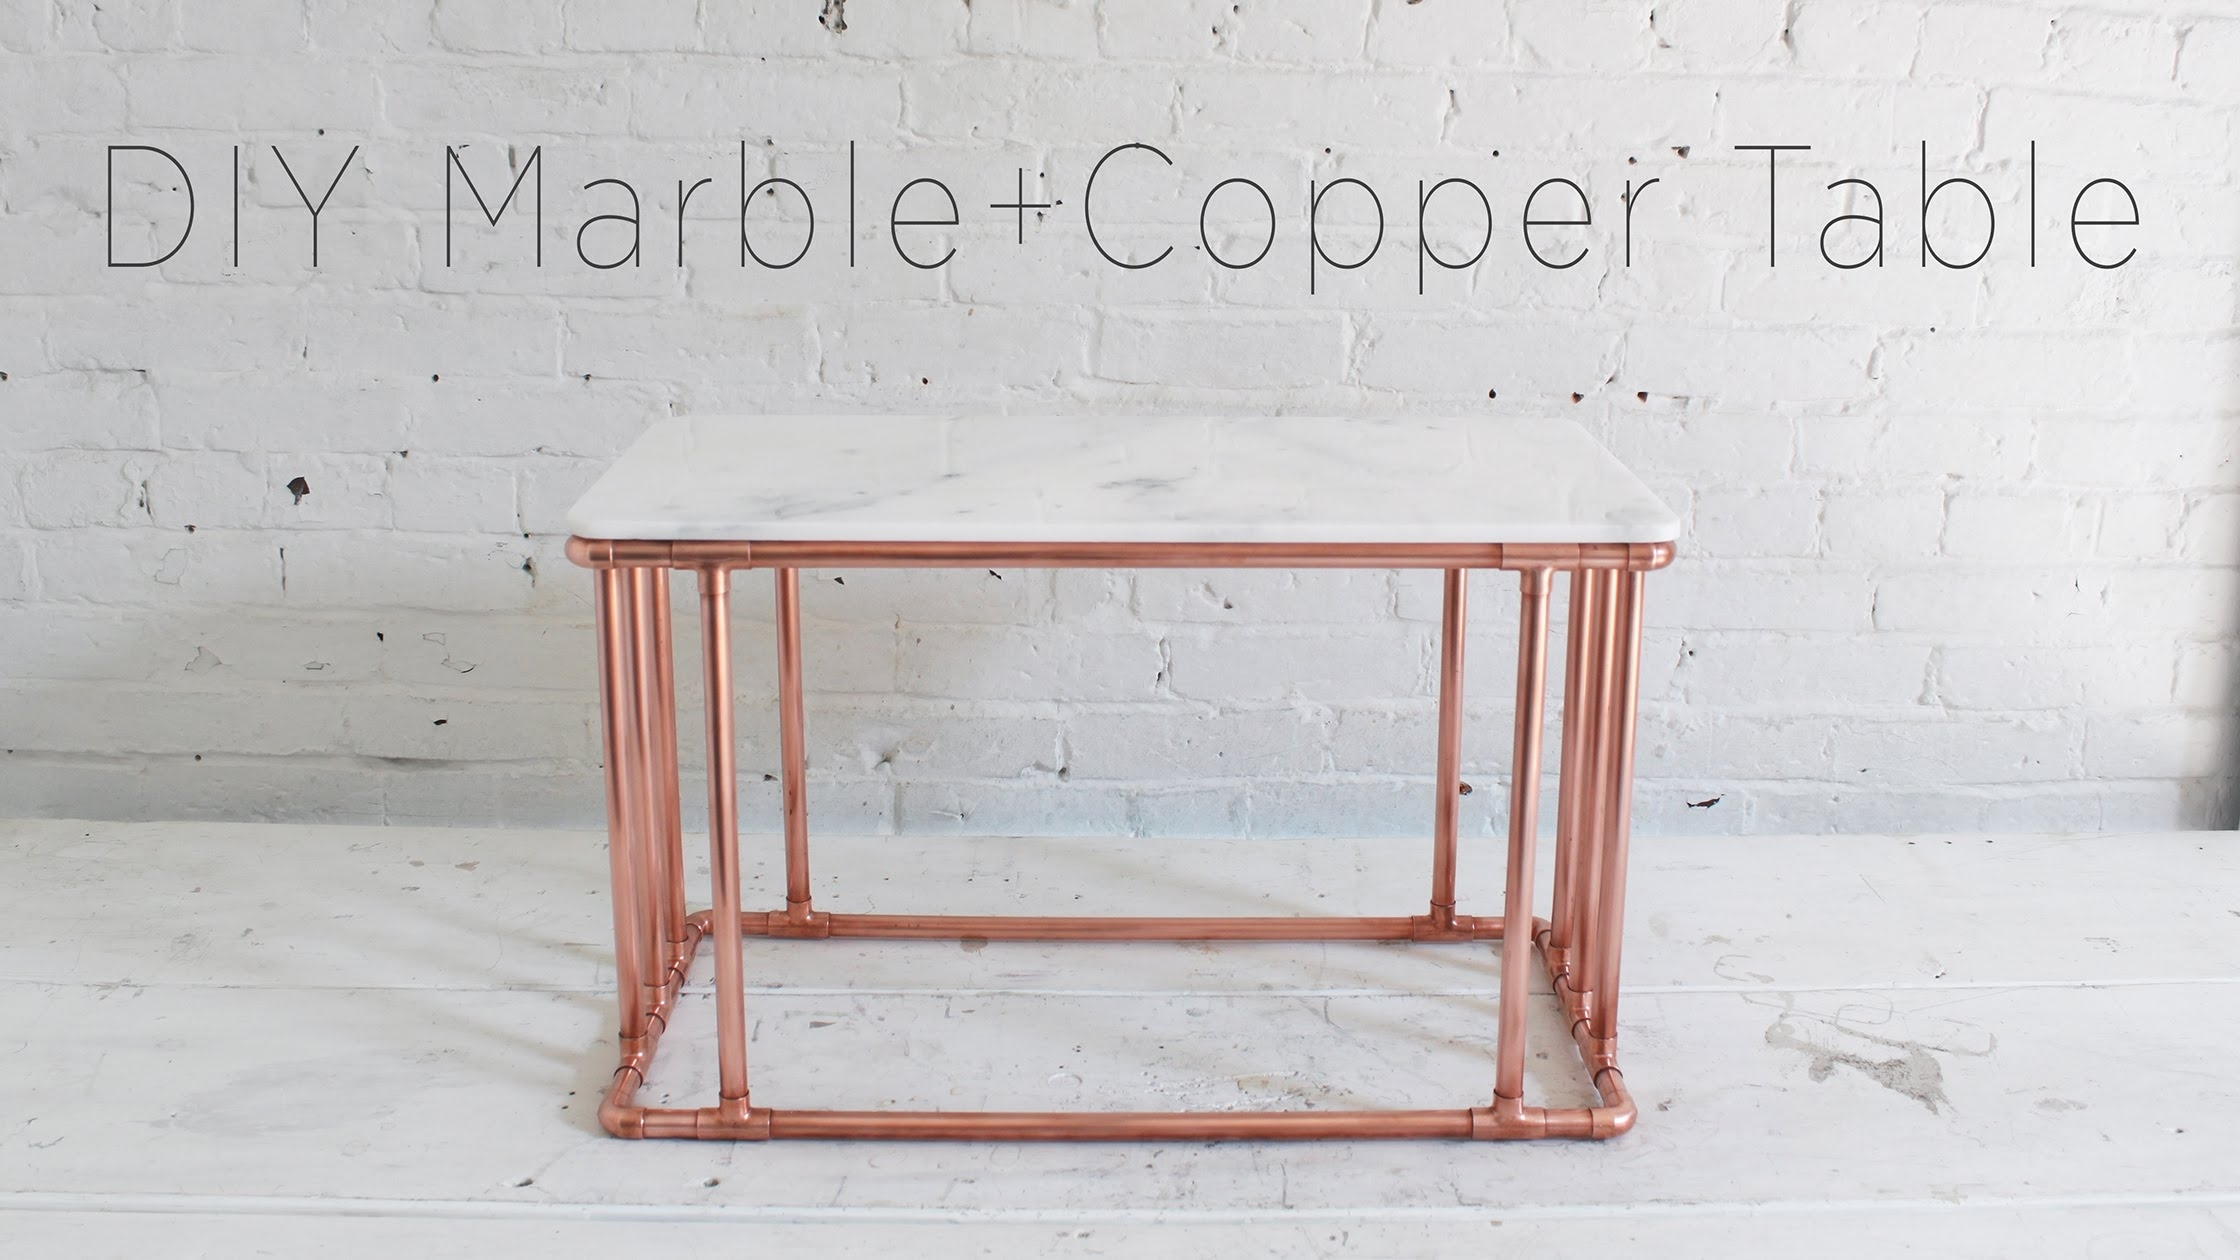 Diy Copper Coffee Table With A Marble Top - Youtube inside Smart Round Marble Top Coffee Tables (Image 11 of 30)